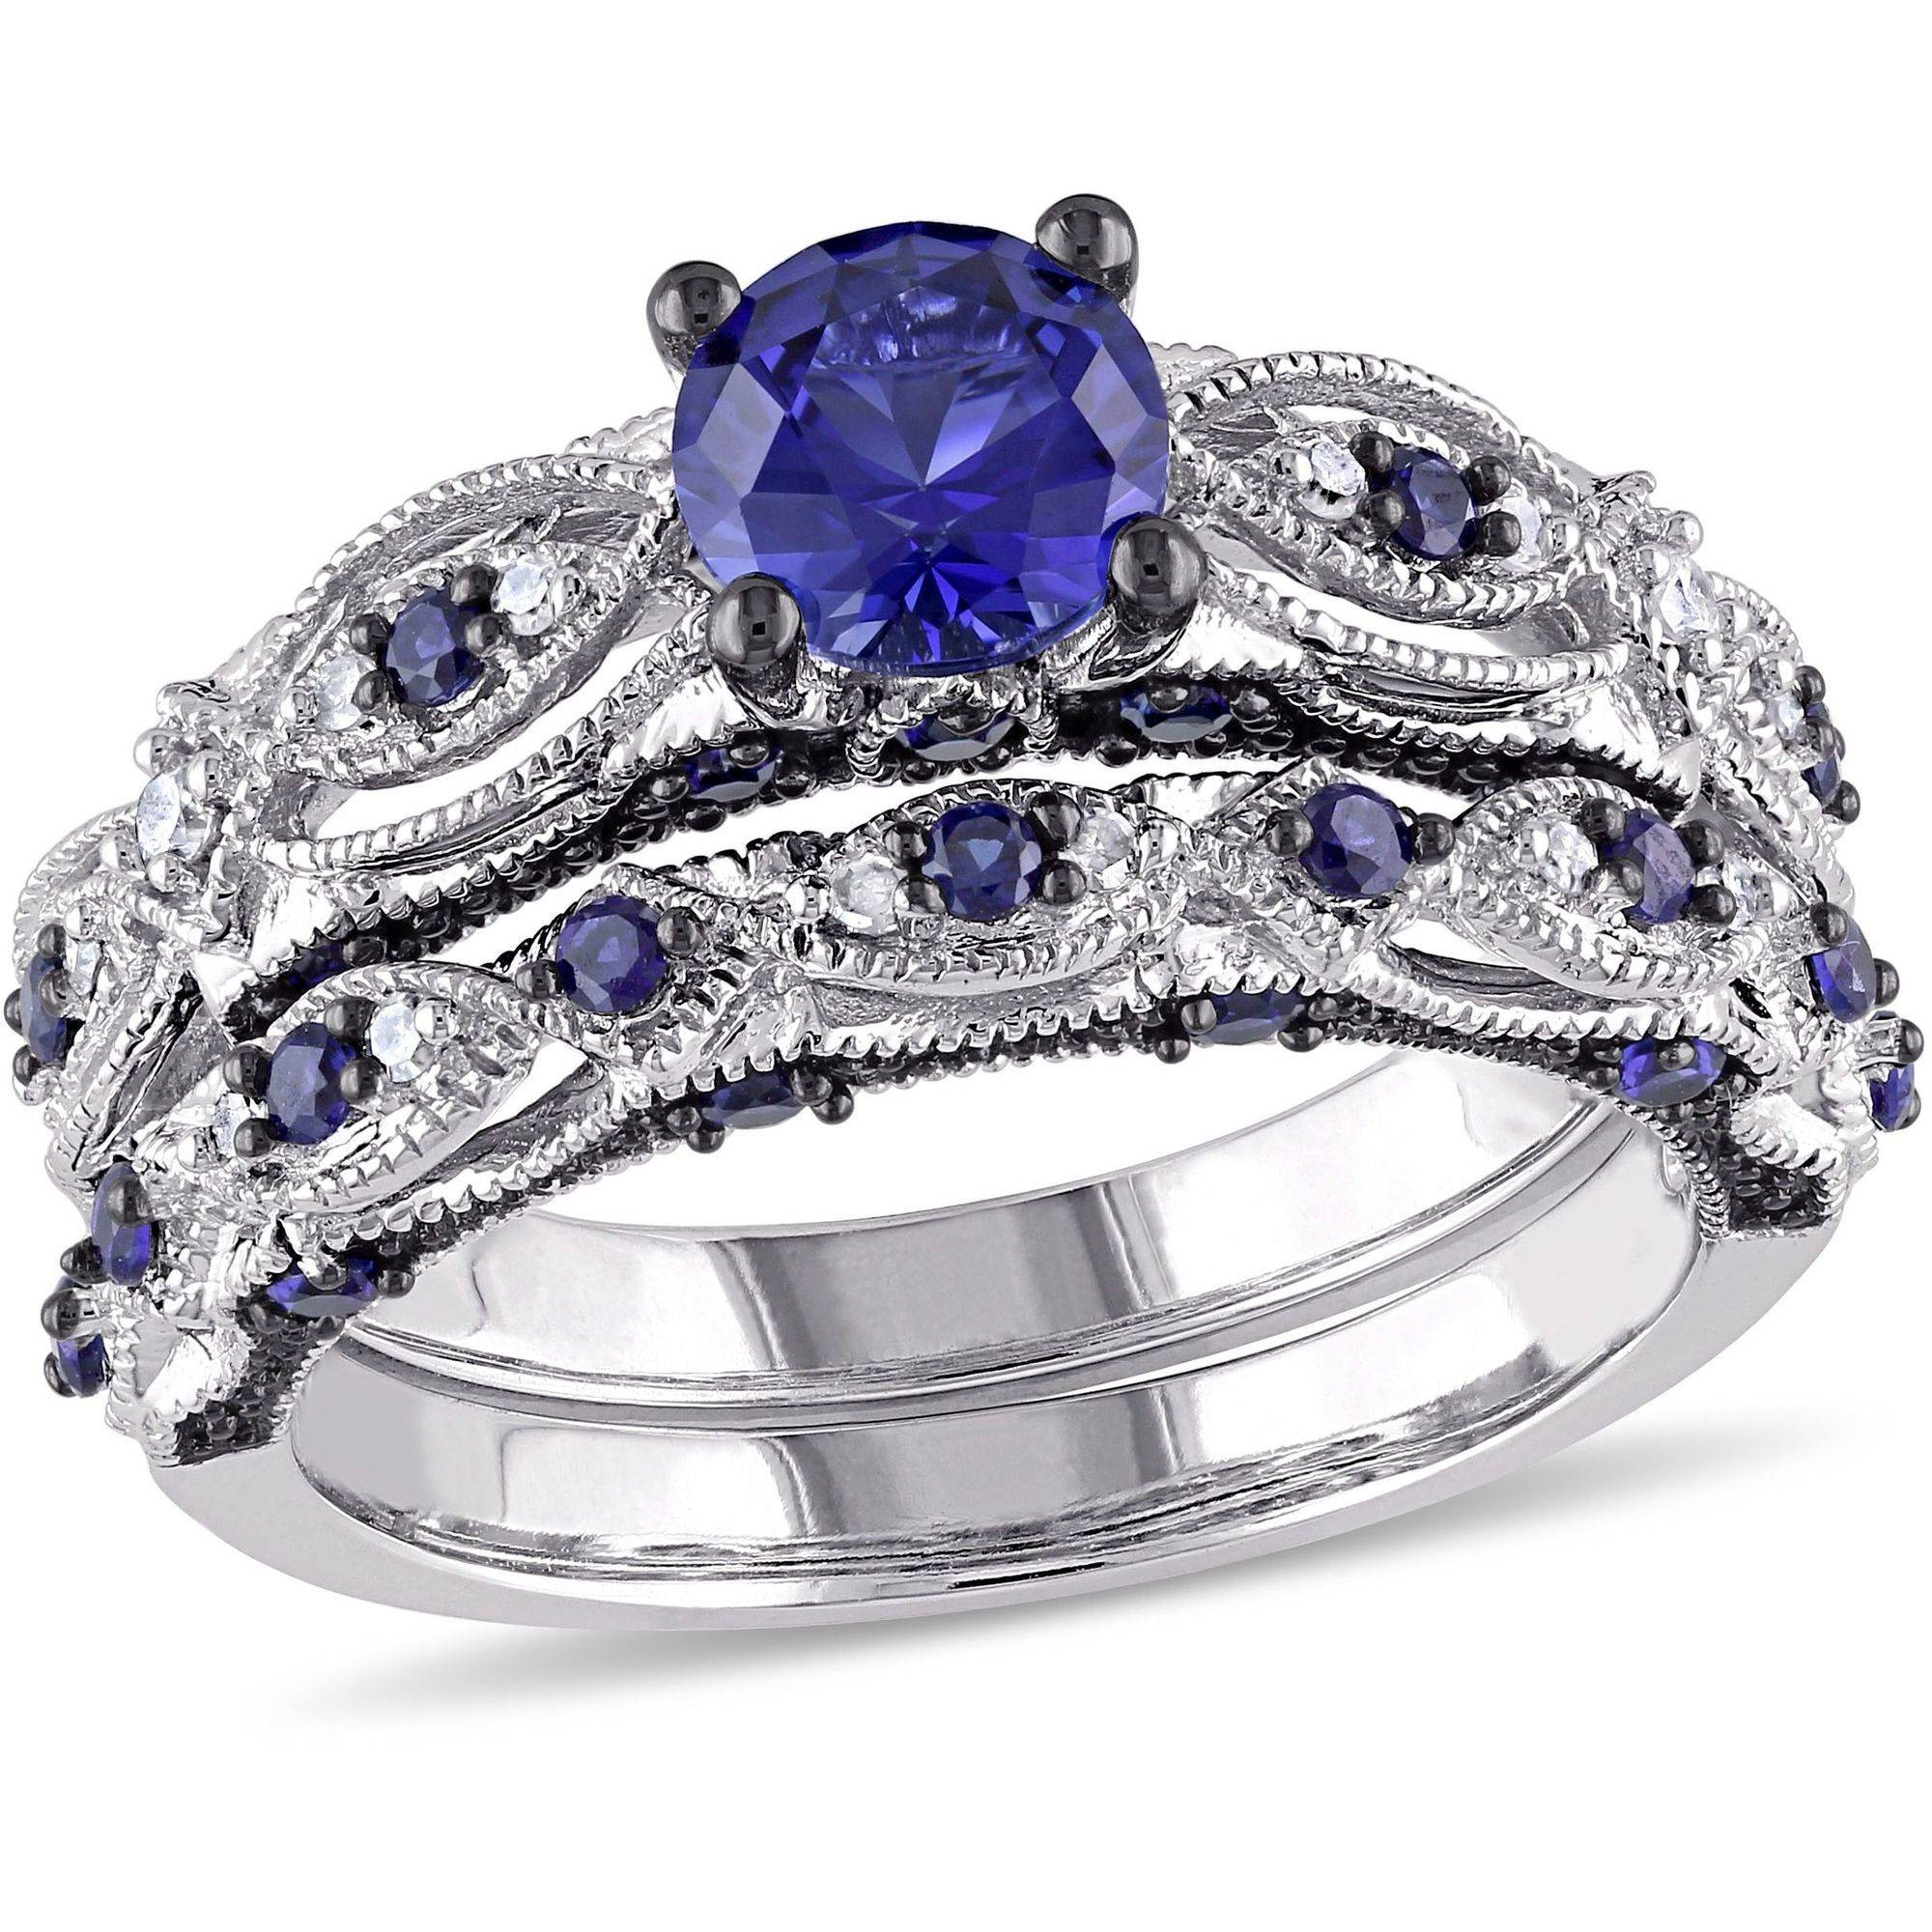 rings westchester store jewelers bridal platinum diamond bands engagement sapphire landsberg